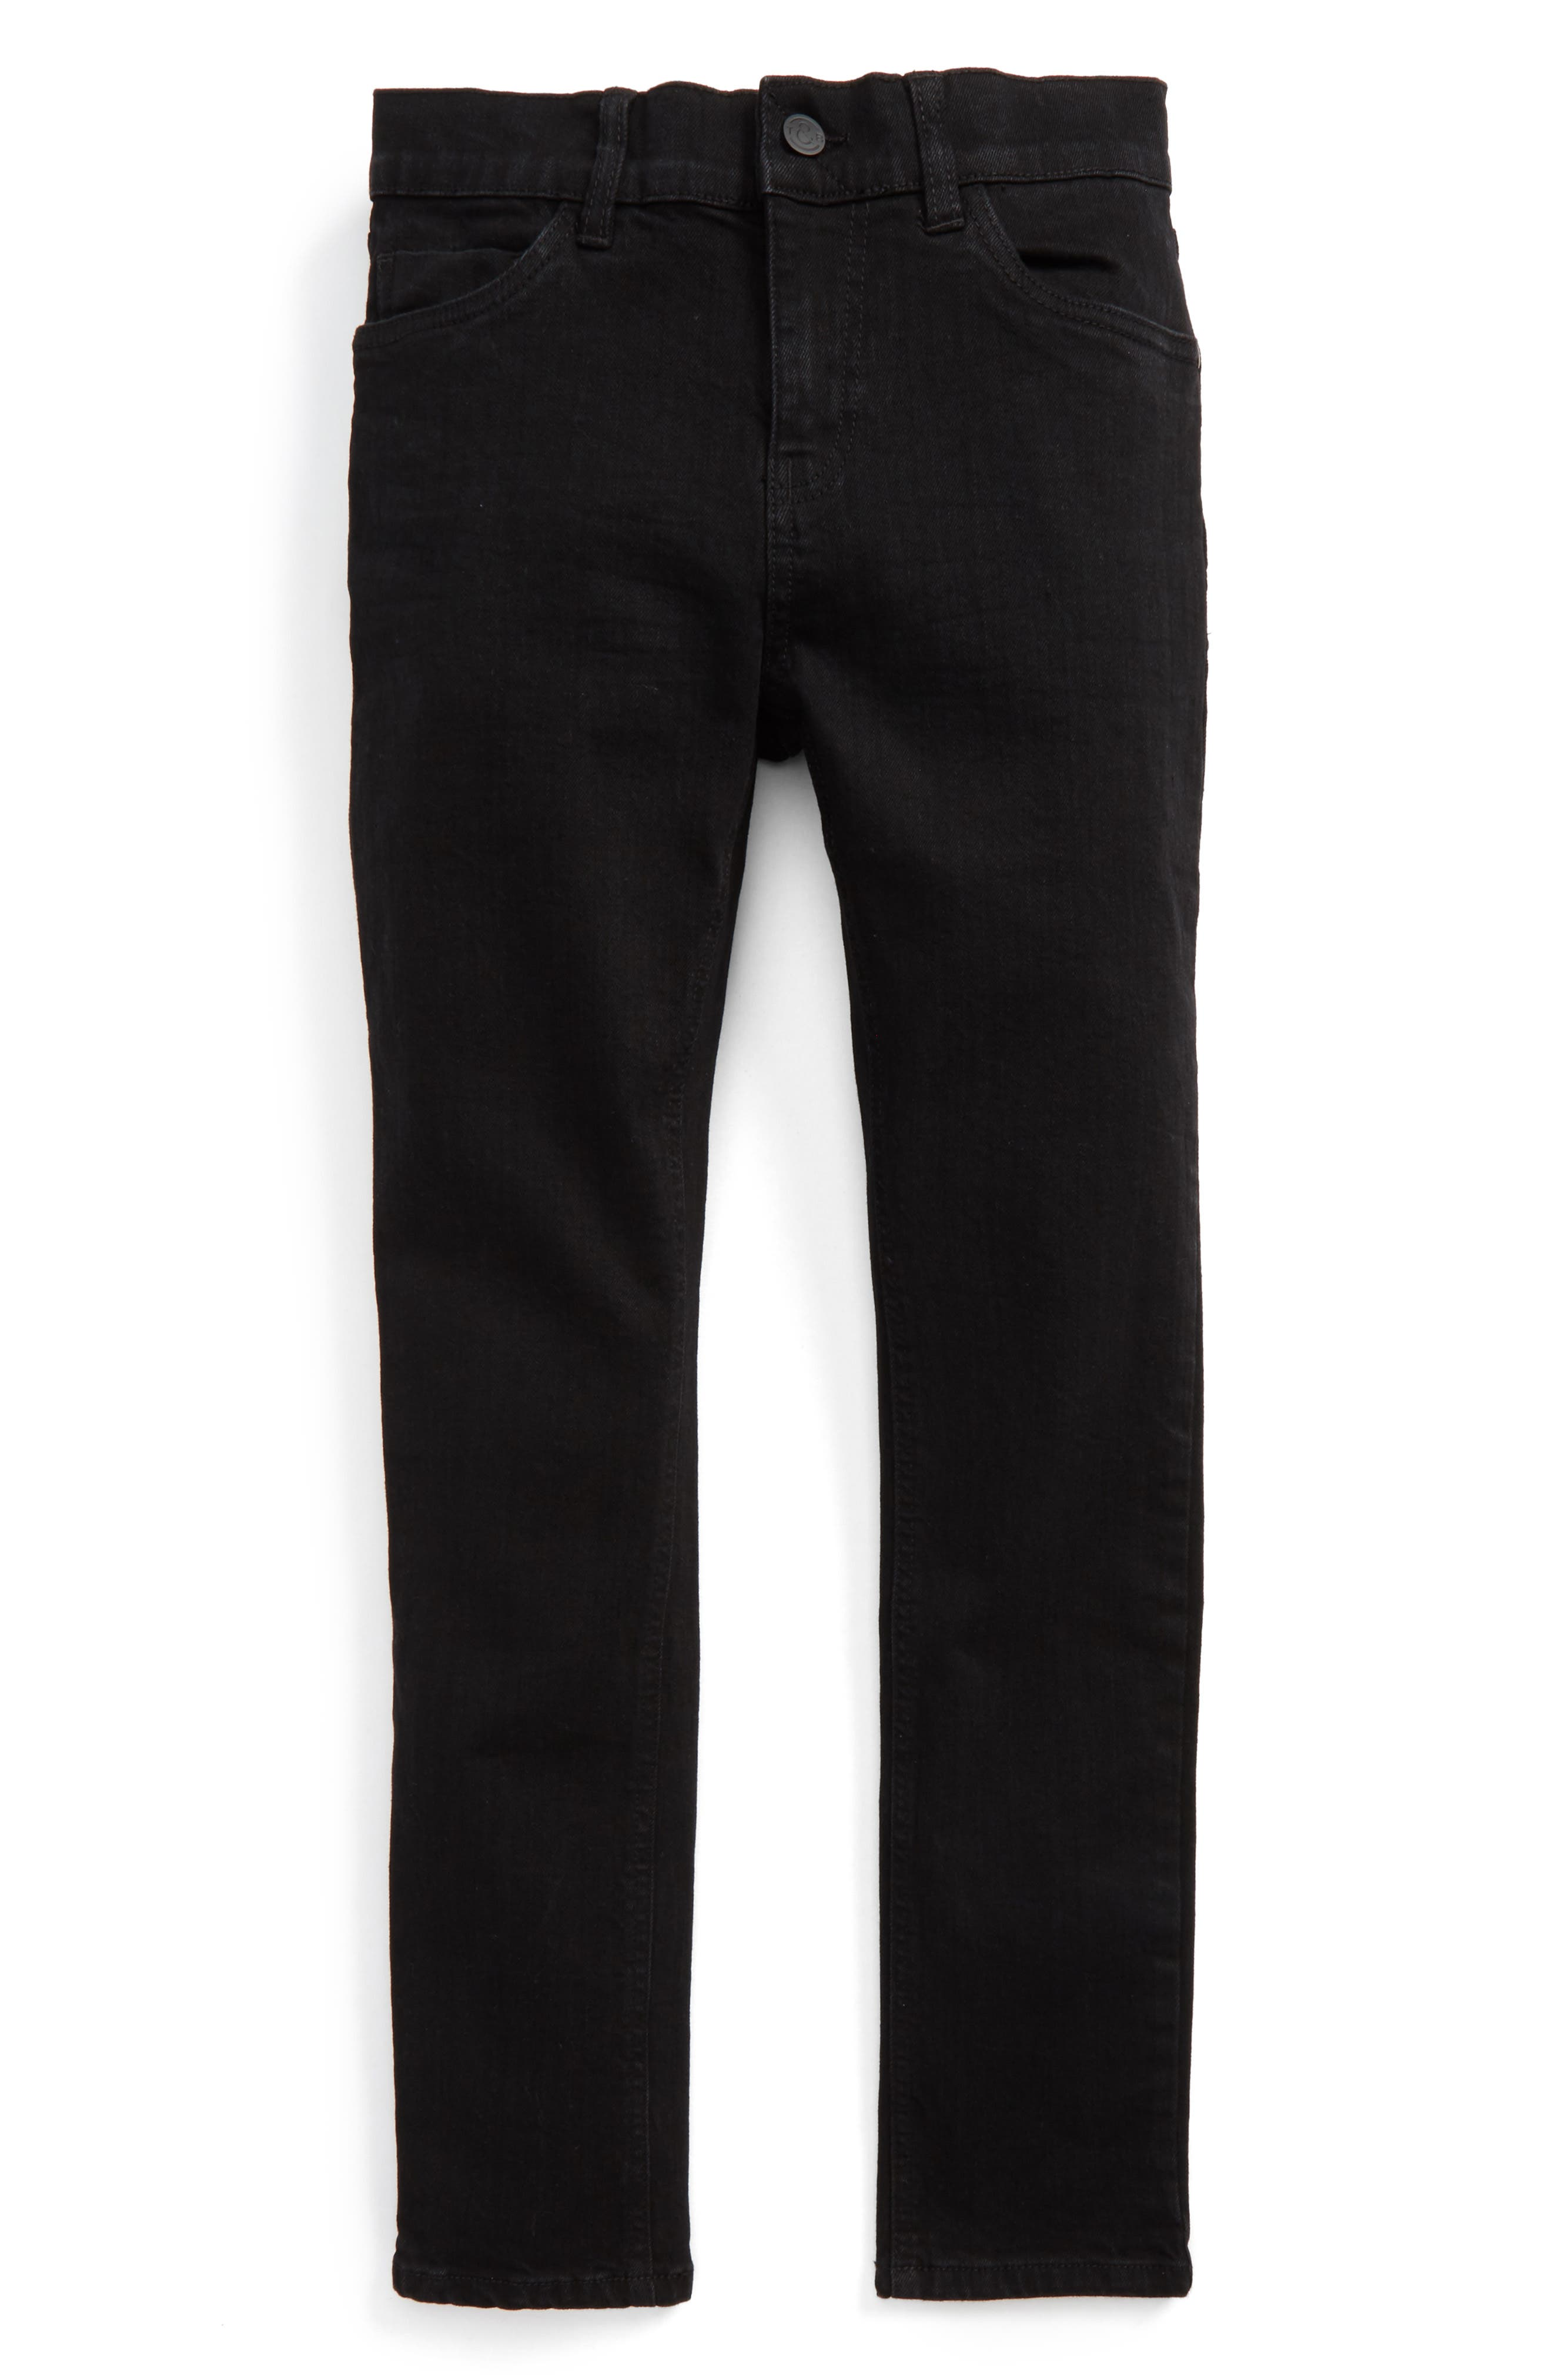 Slouch Skinny Jeans,                             Main thumbnail 1, color,                             Easy Black Wash